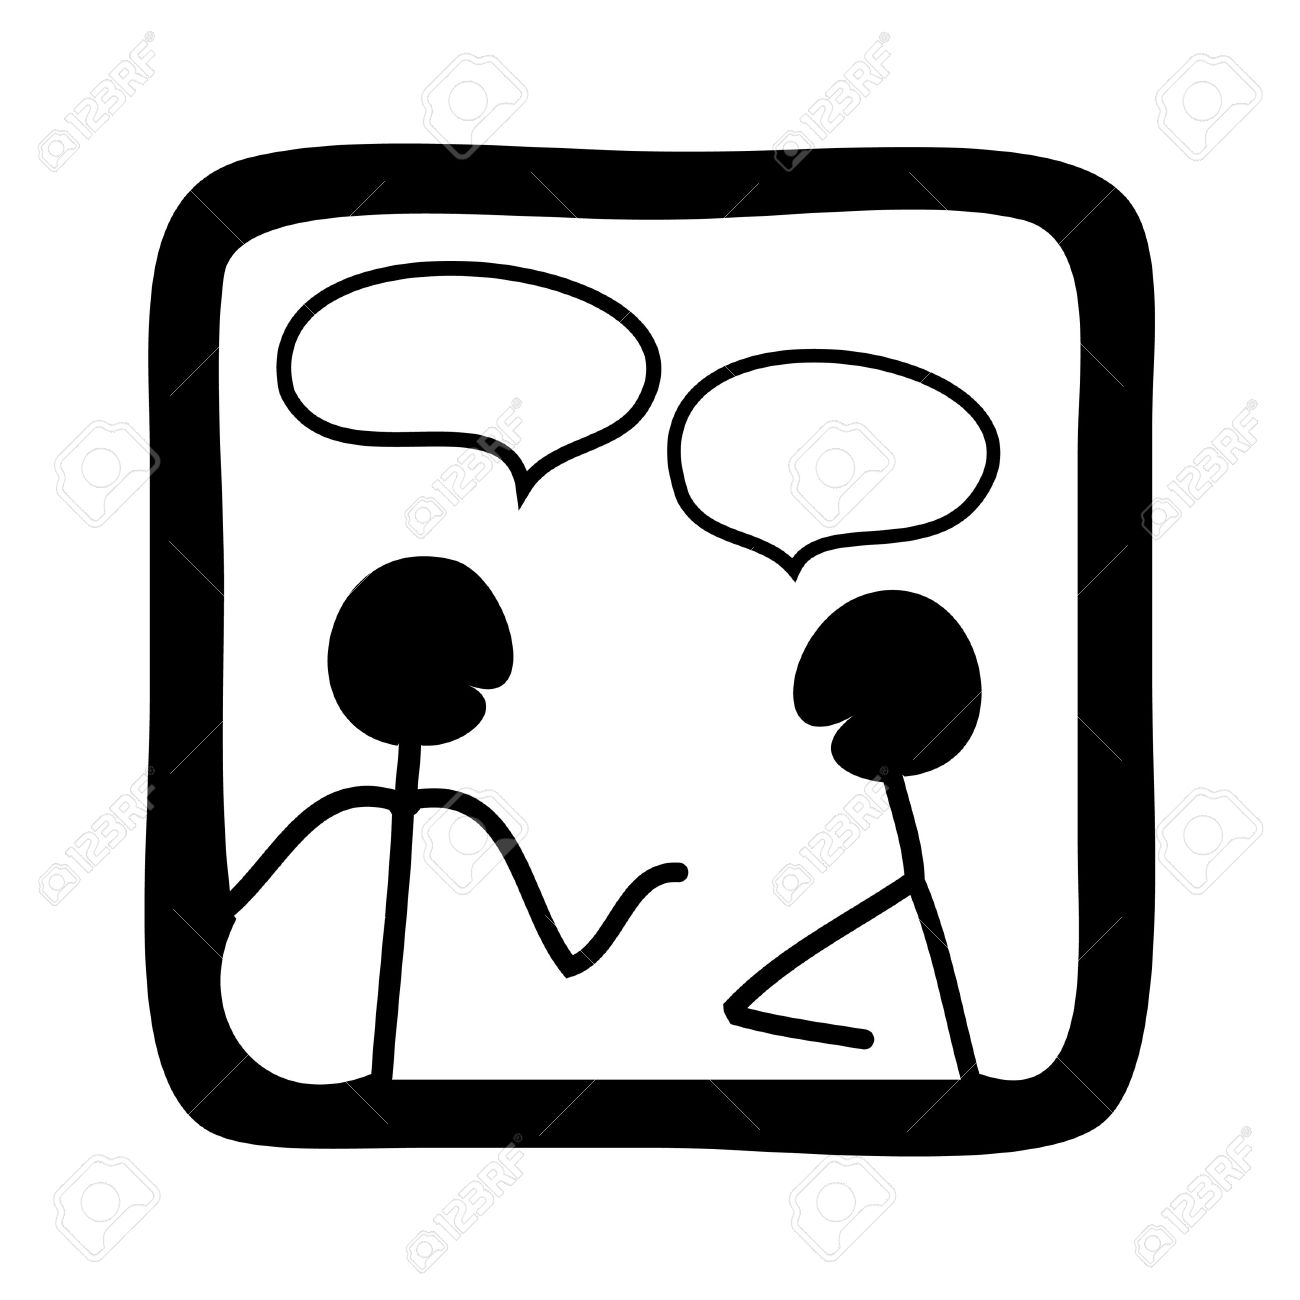 Illustration clipart talk partner Clipart clipart Clipart  Talking